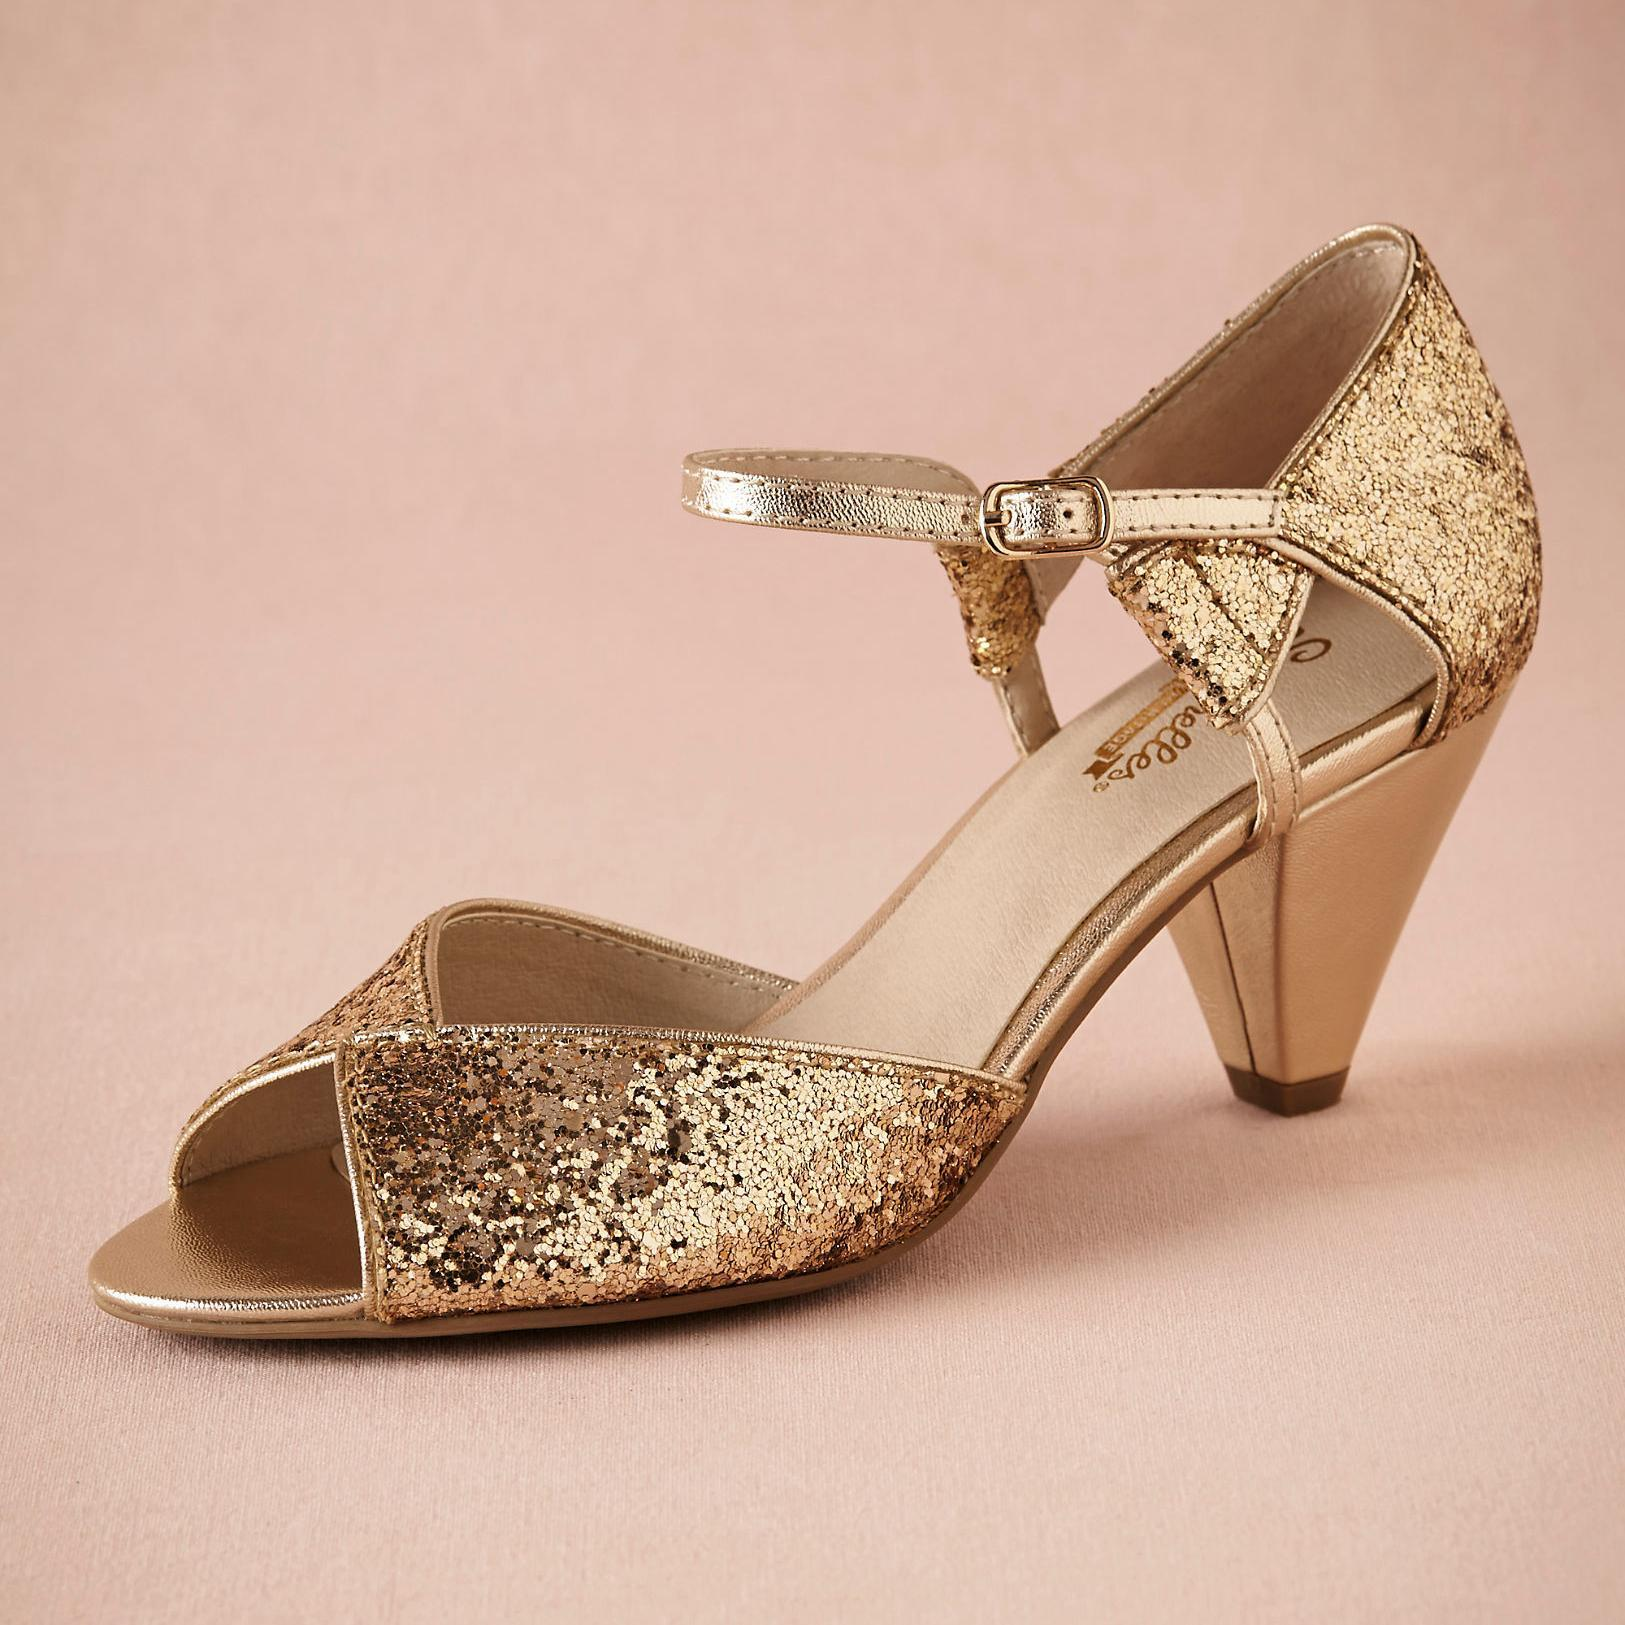 Gold Glitter Spark Wedding Shoe Handmade Pumps Leather Sole